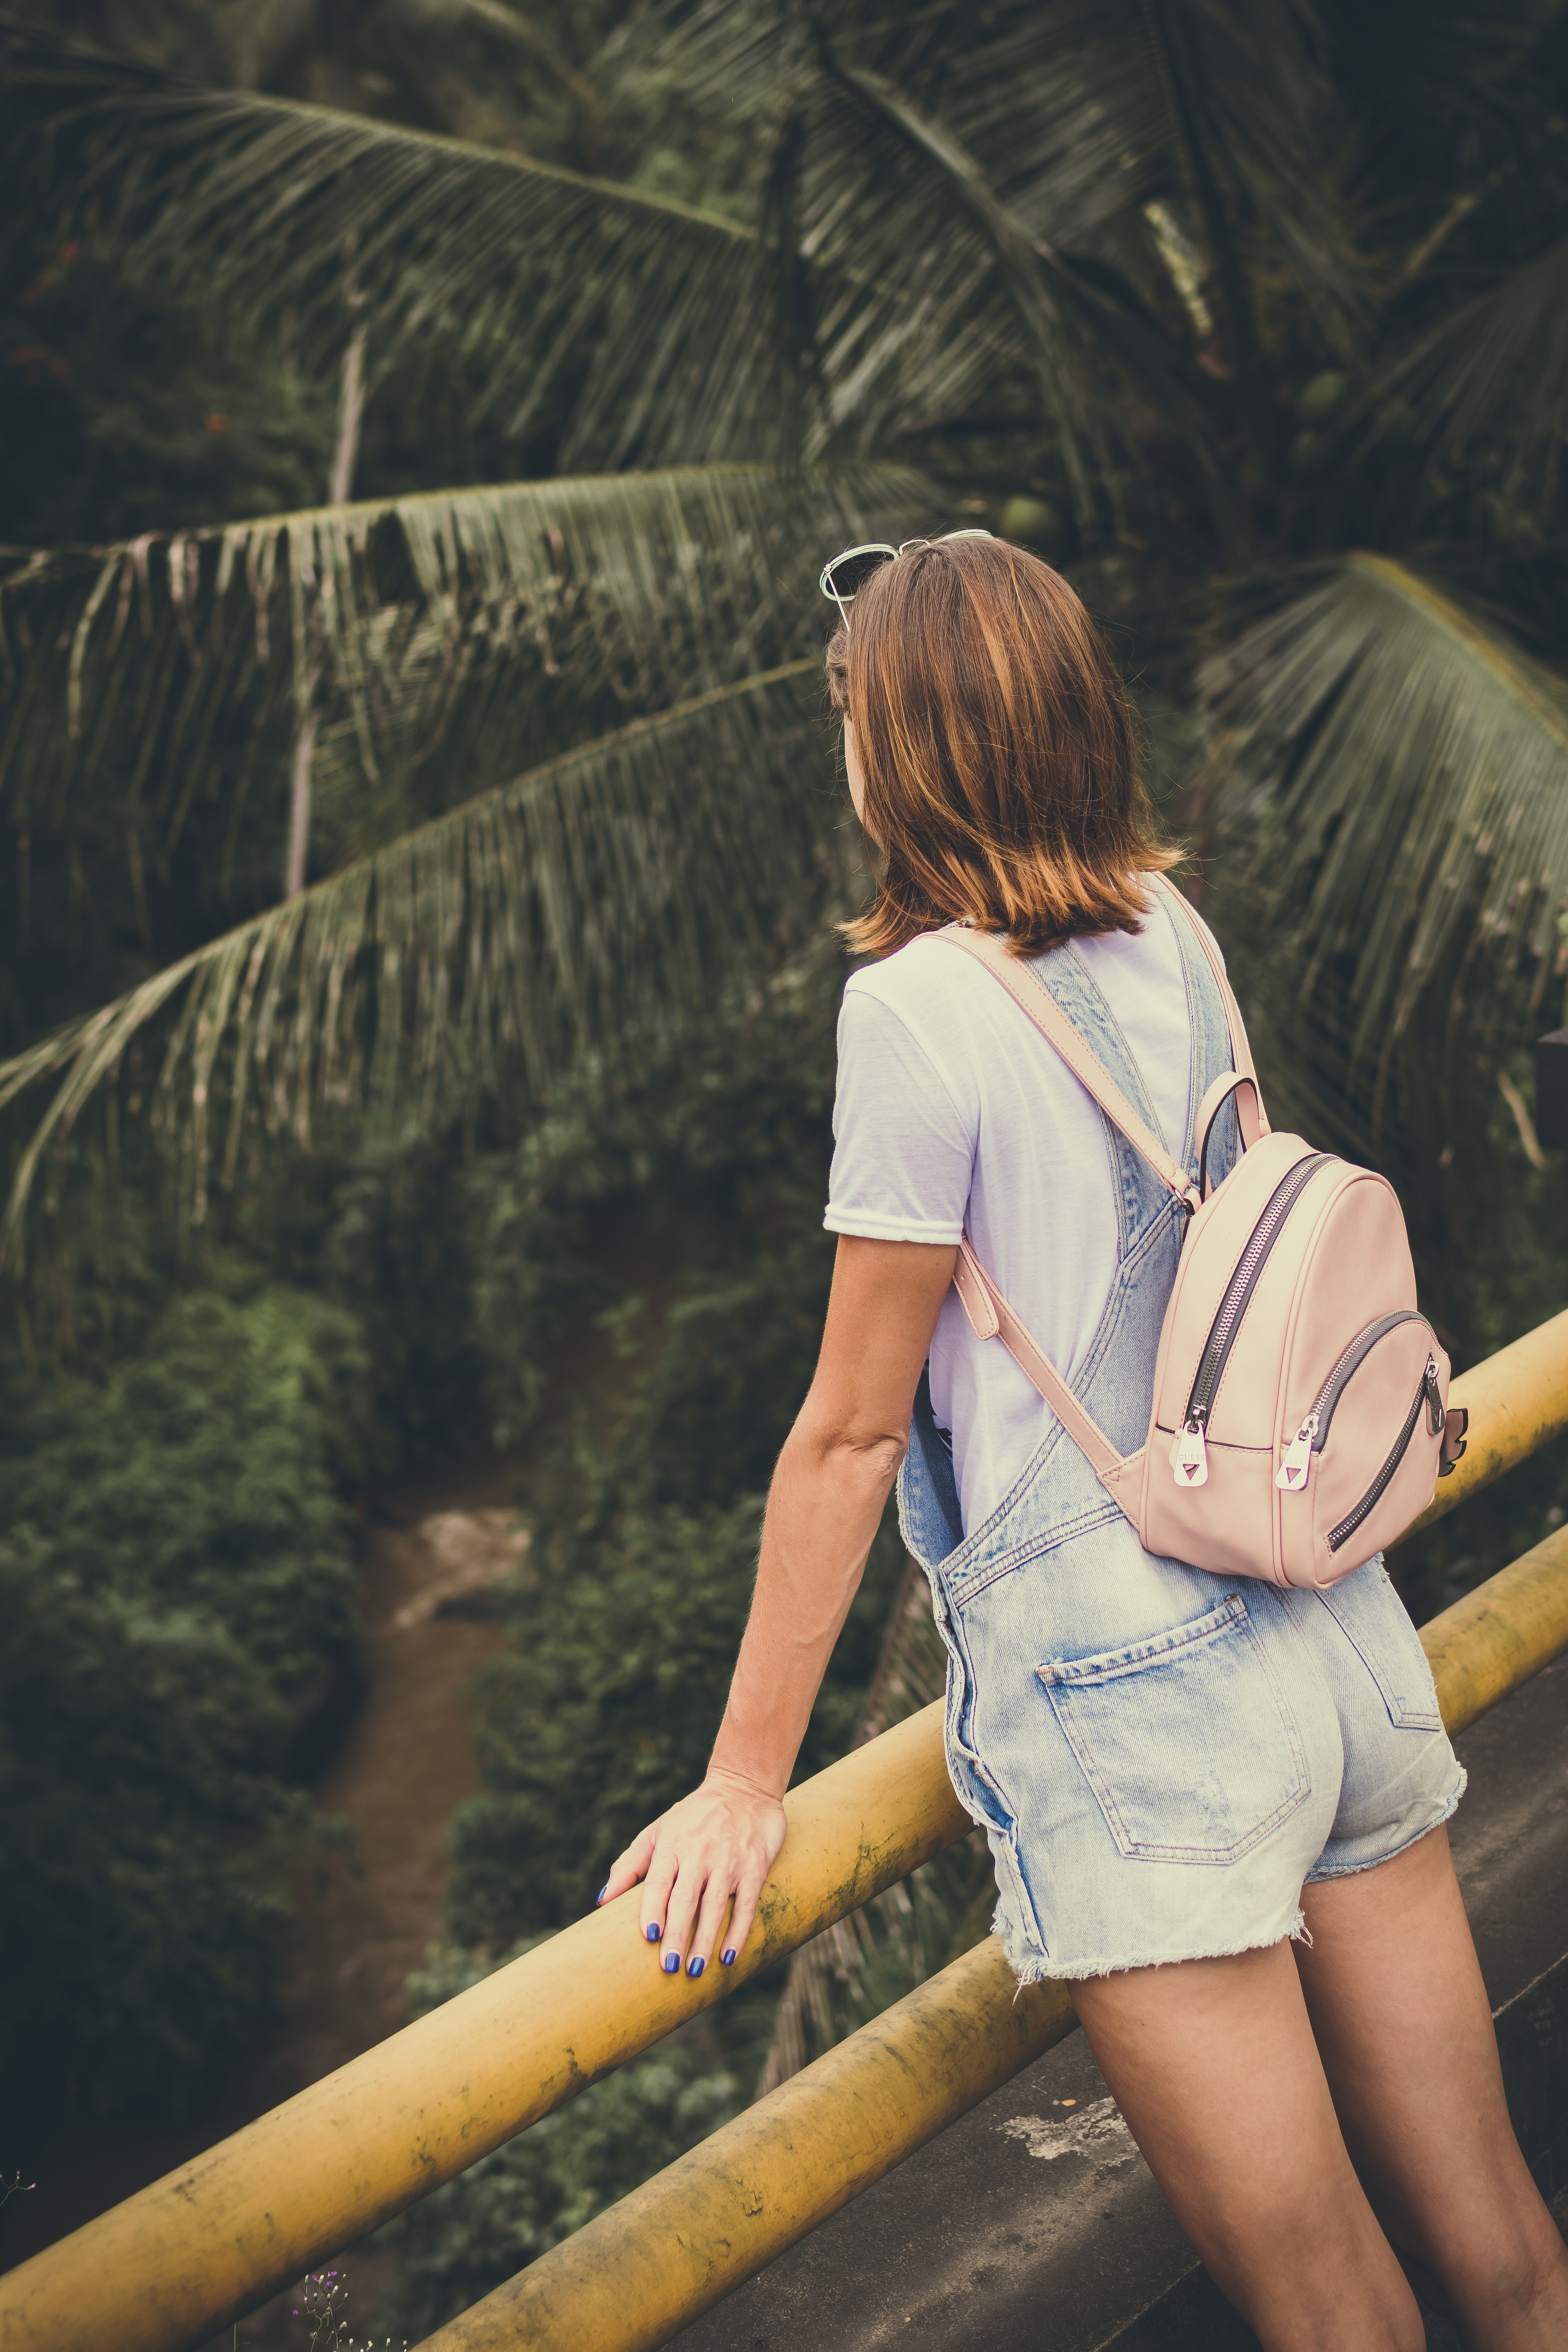 Woman wearing dungaree shorts stands near a yellow metal rail overlook a river belo with coconut trees at daytime photo